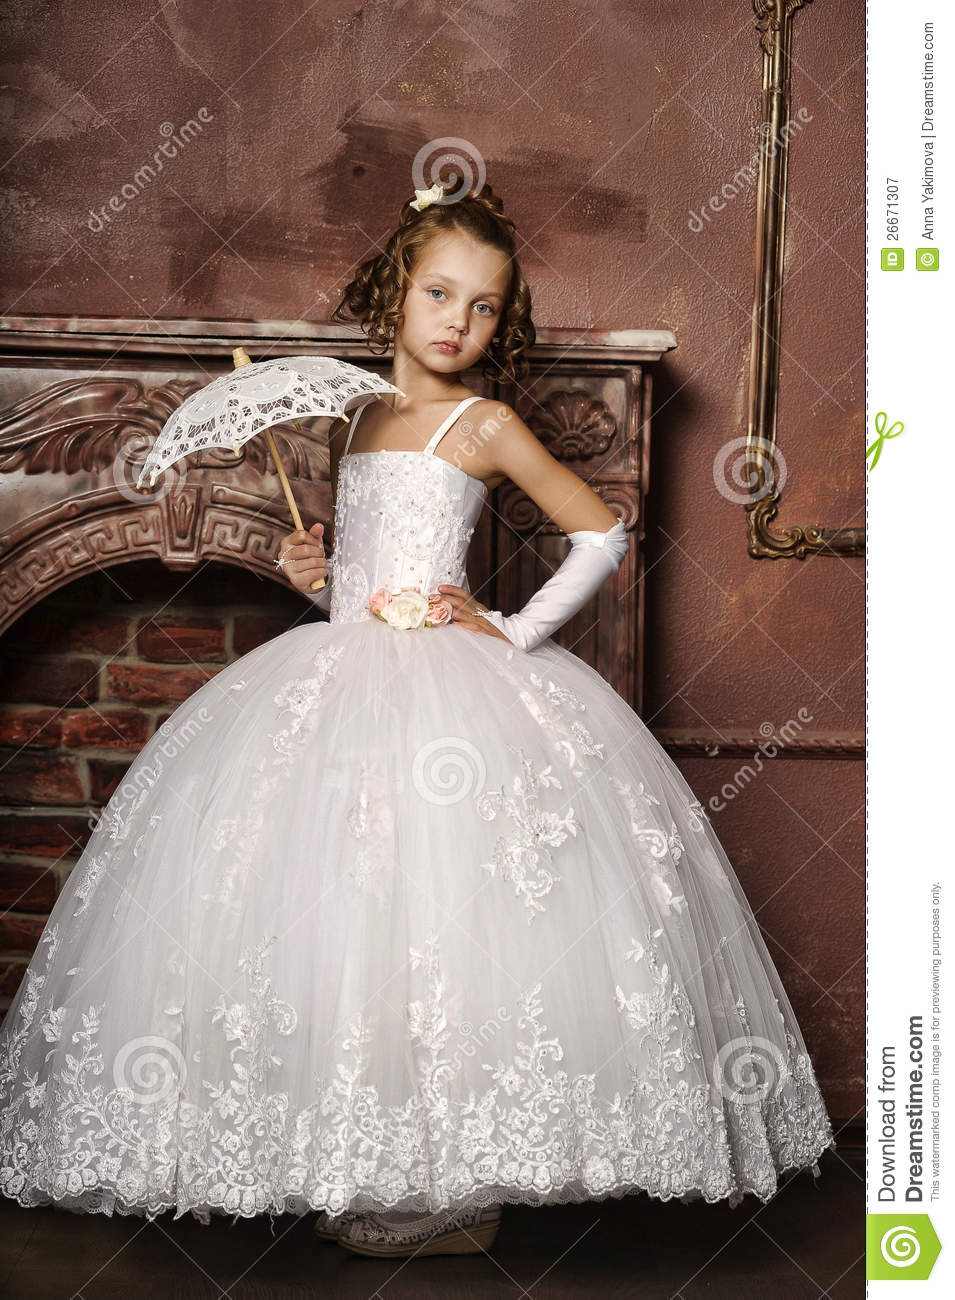 7506315b89 Little Girl In Wedding Dress Stock Image - Image of girl